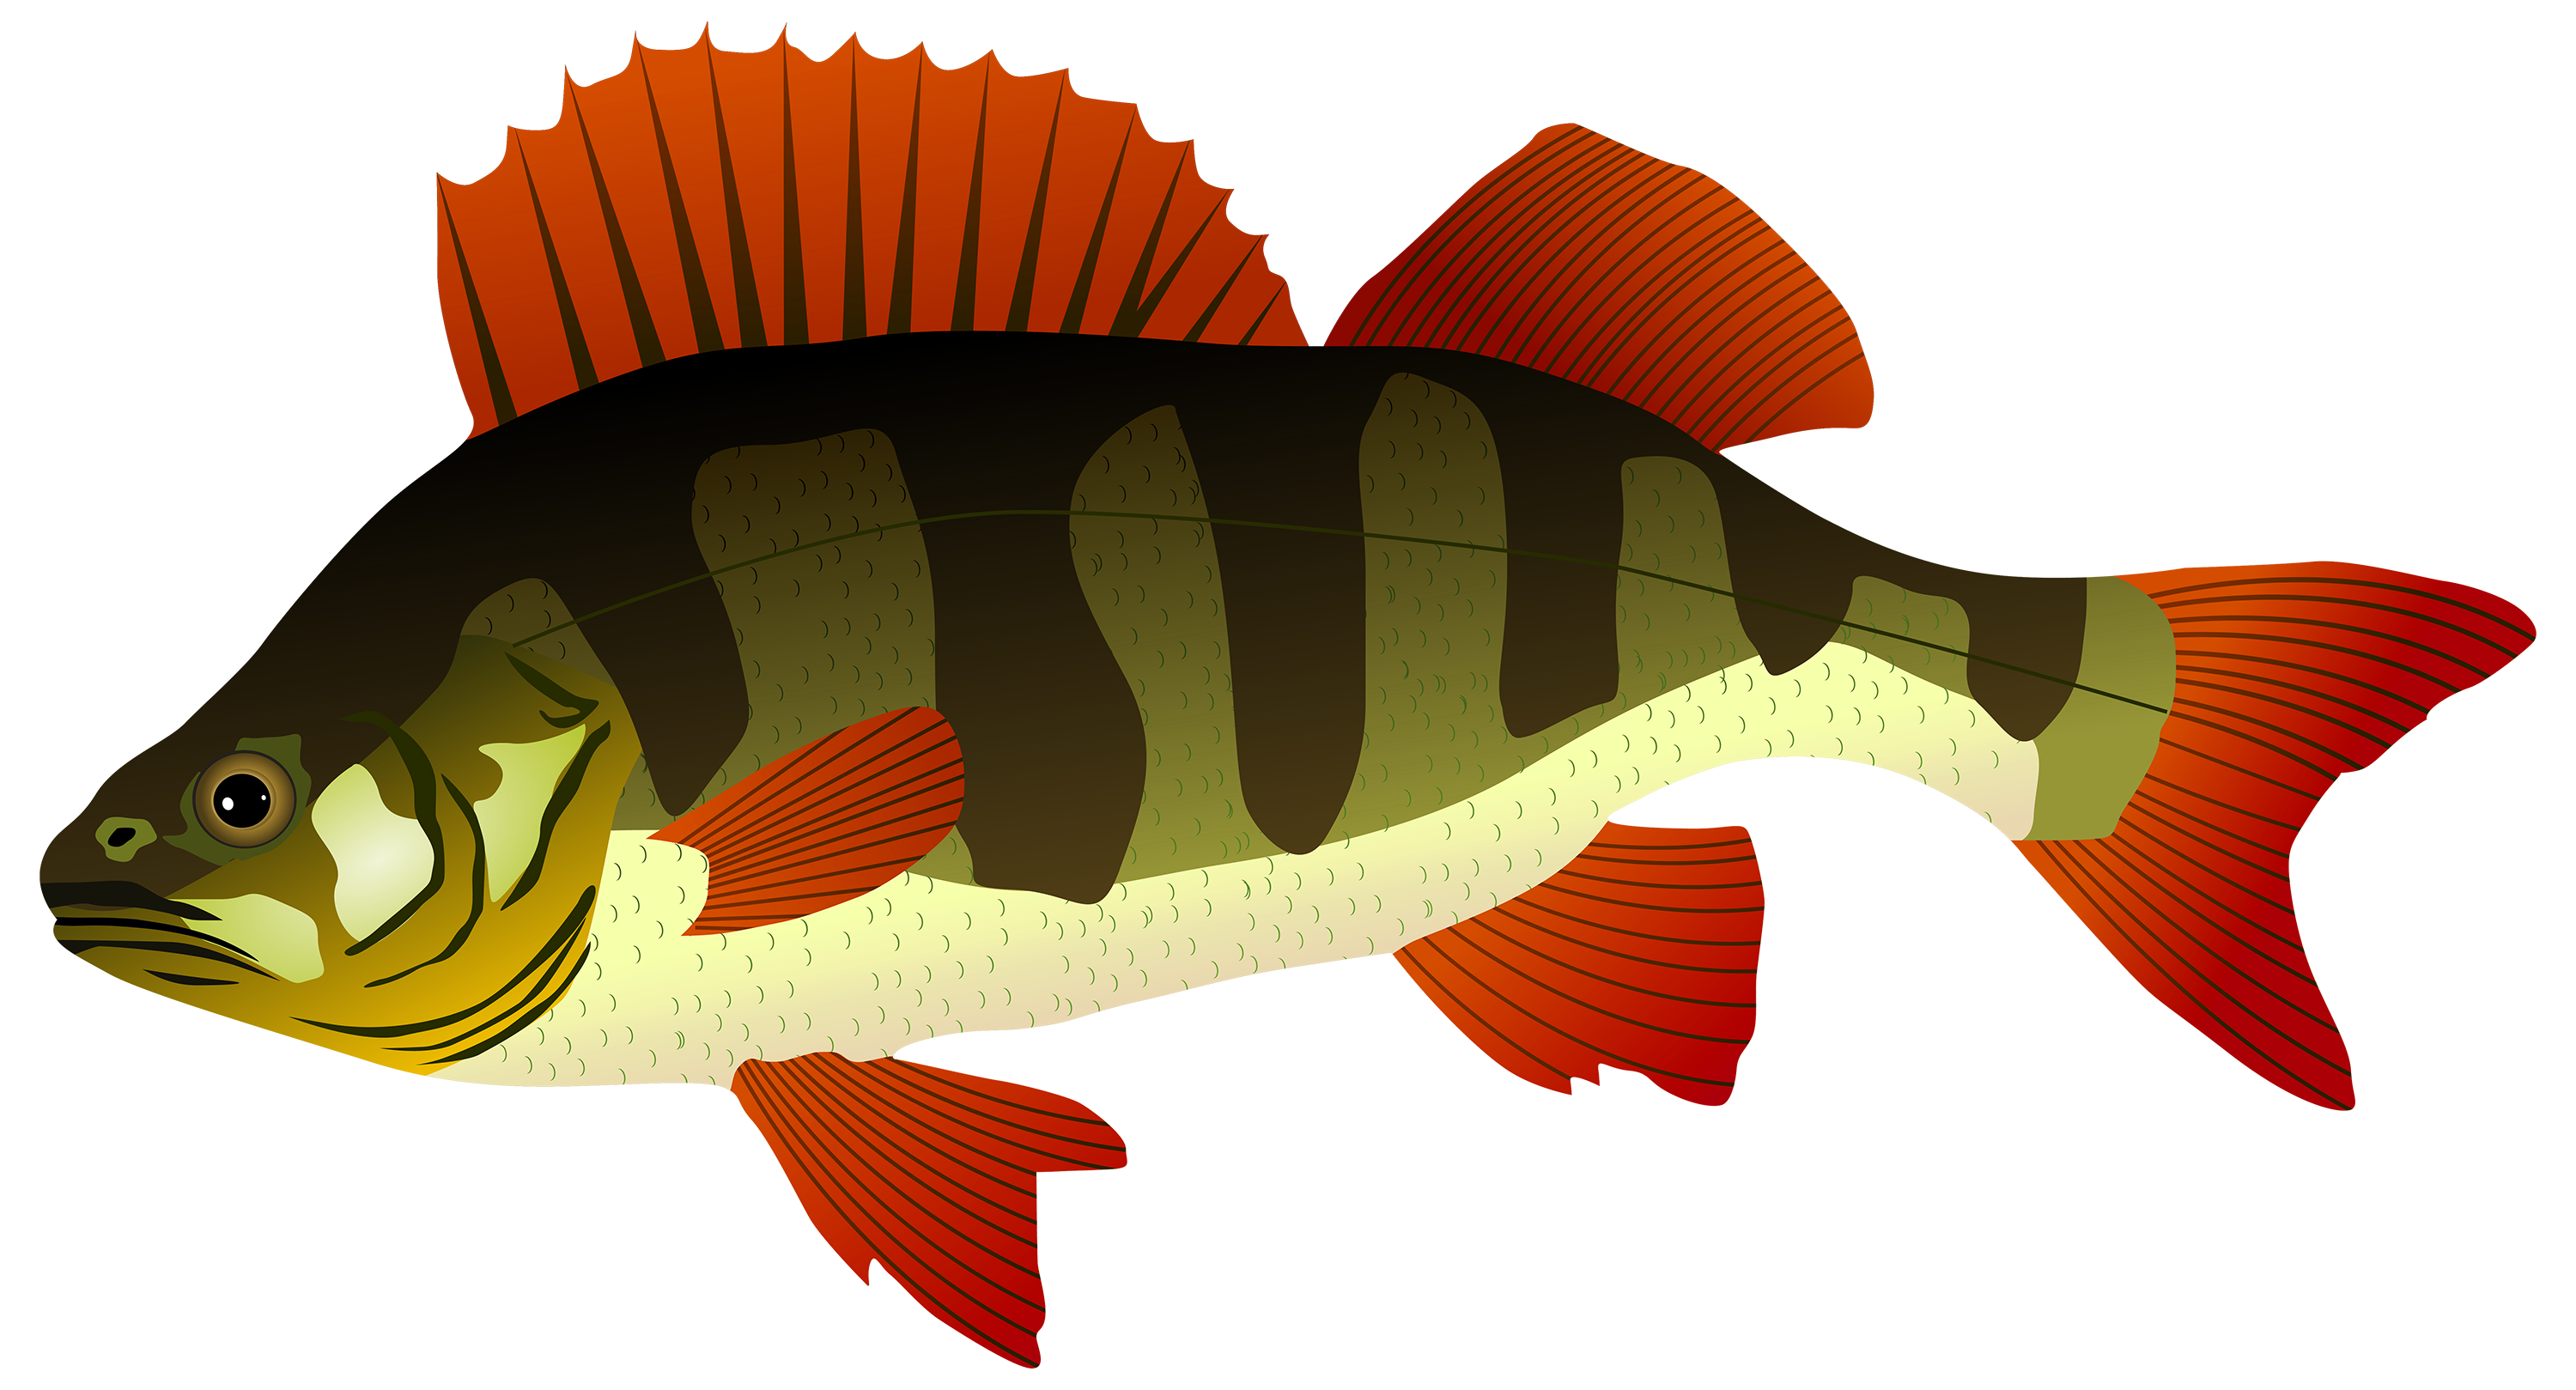 Big mouth bass fish clipart clip art free Bass Fish Clipart at GetDrawings.com | Free for personal use Bass ... clip art free